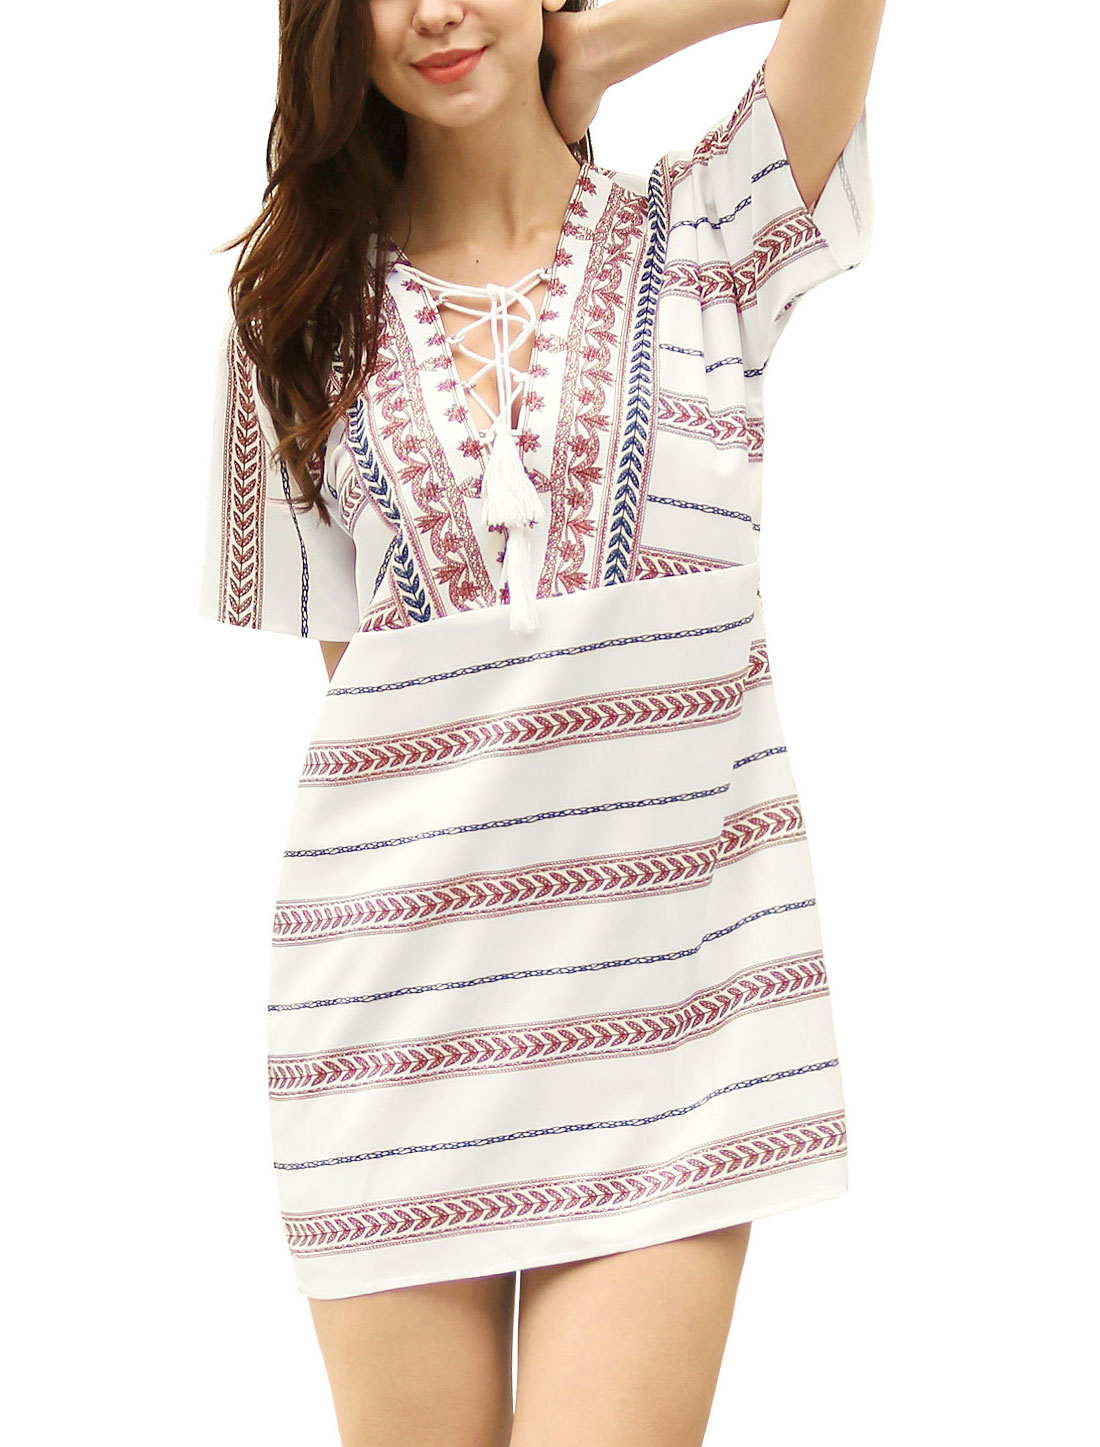 Women Leaves Stripes Pattern Fringe Lace Up Mini Dress White M